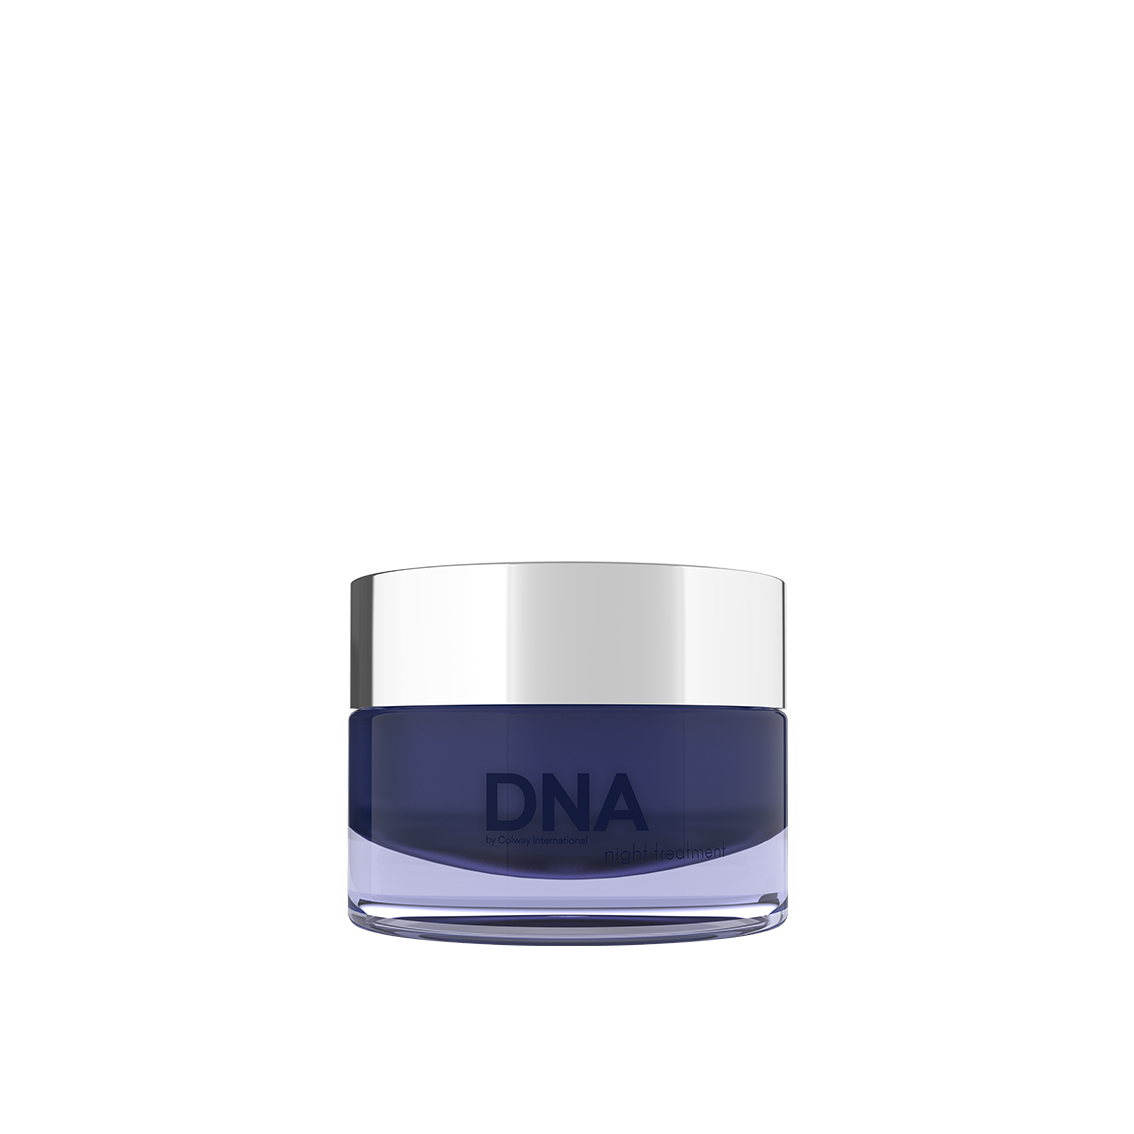 Luxury dna night care products colway international - Ka international outlet ...